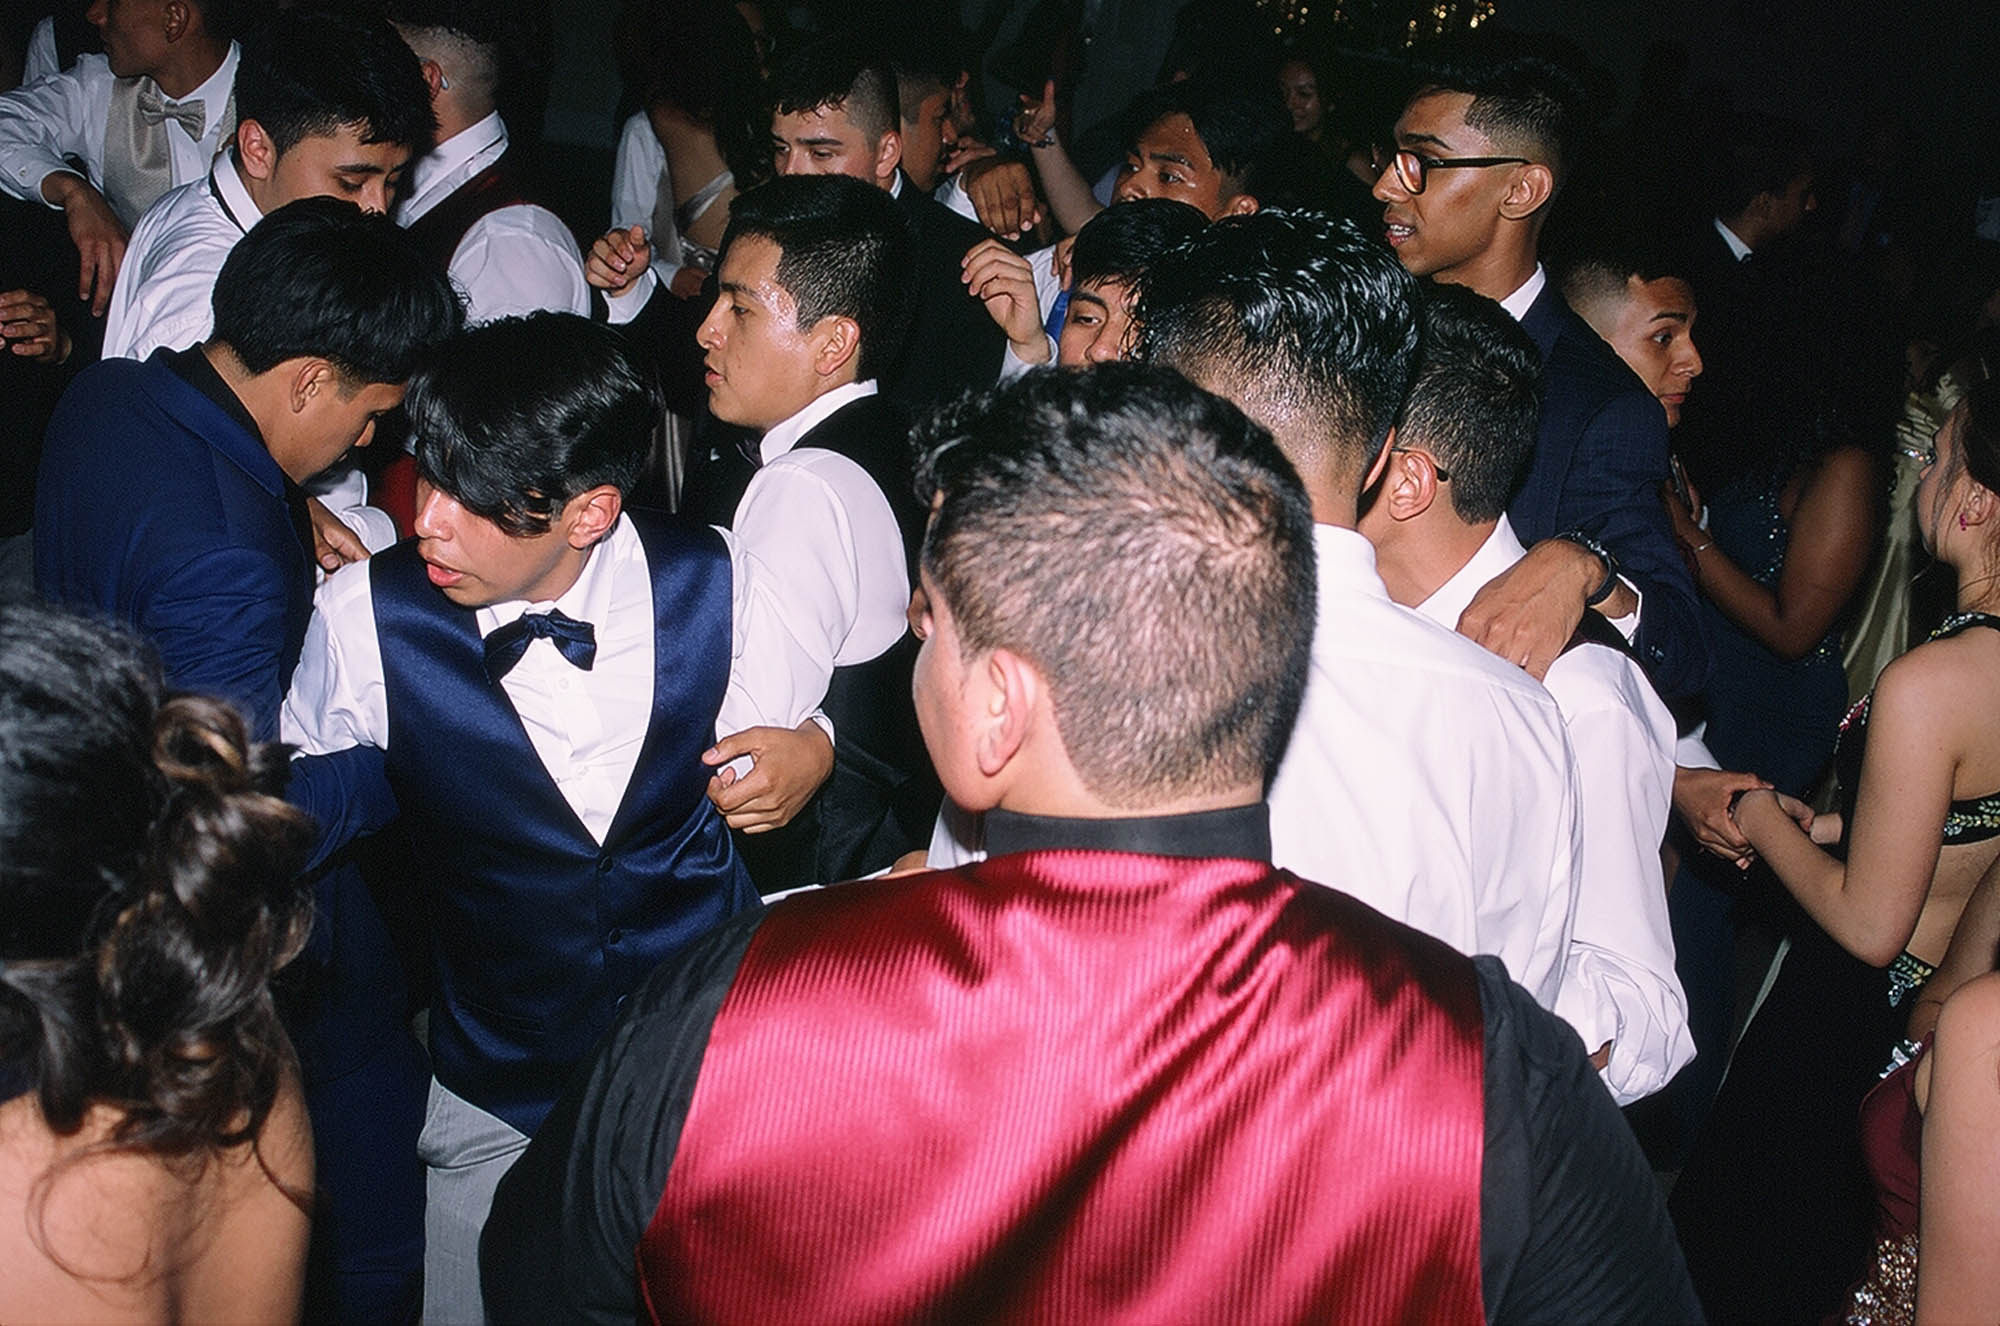 My senior prom pictures while people dancing Date: May 31, 2019 Shot on Fujifilm Fujichrome Provia 100f